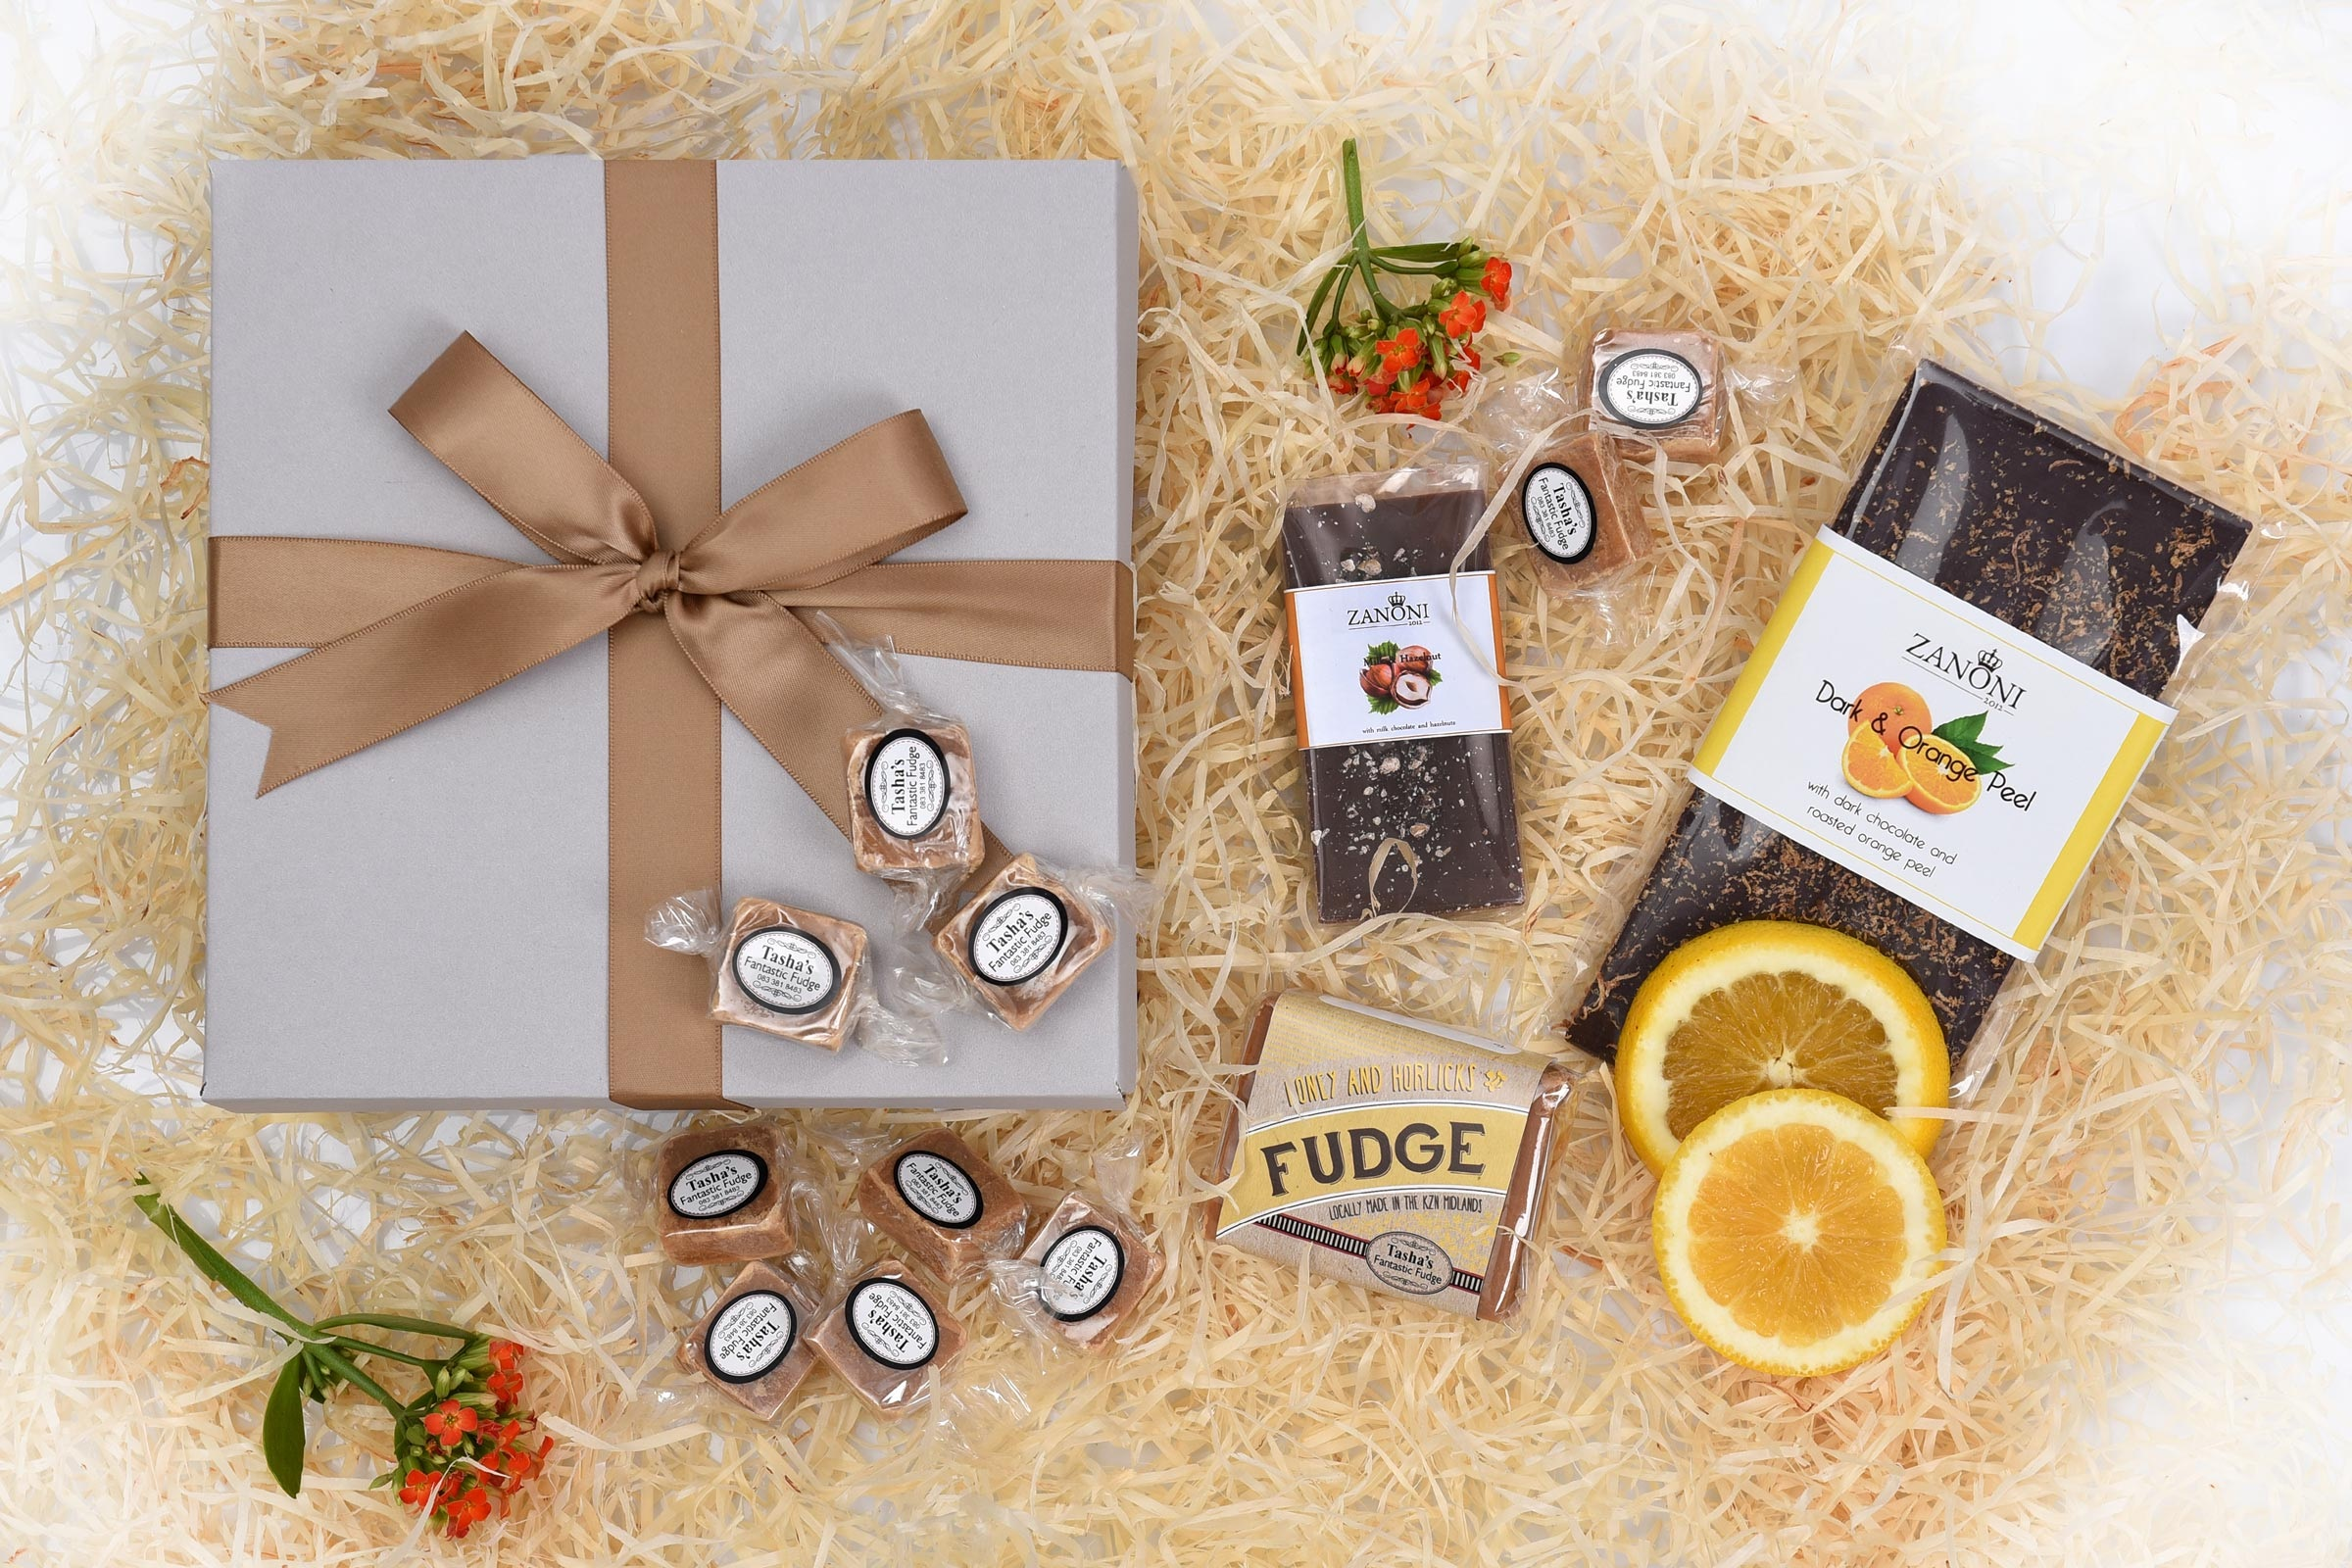 Choosing the right sort of corporate gifts made easy